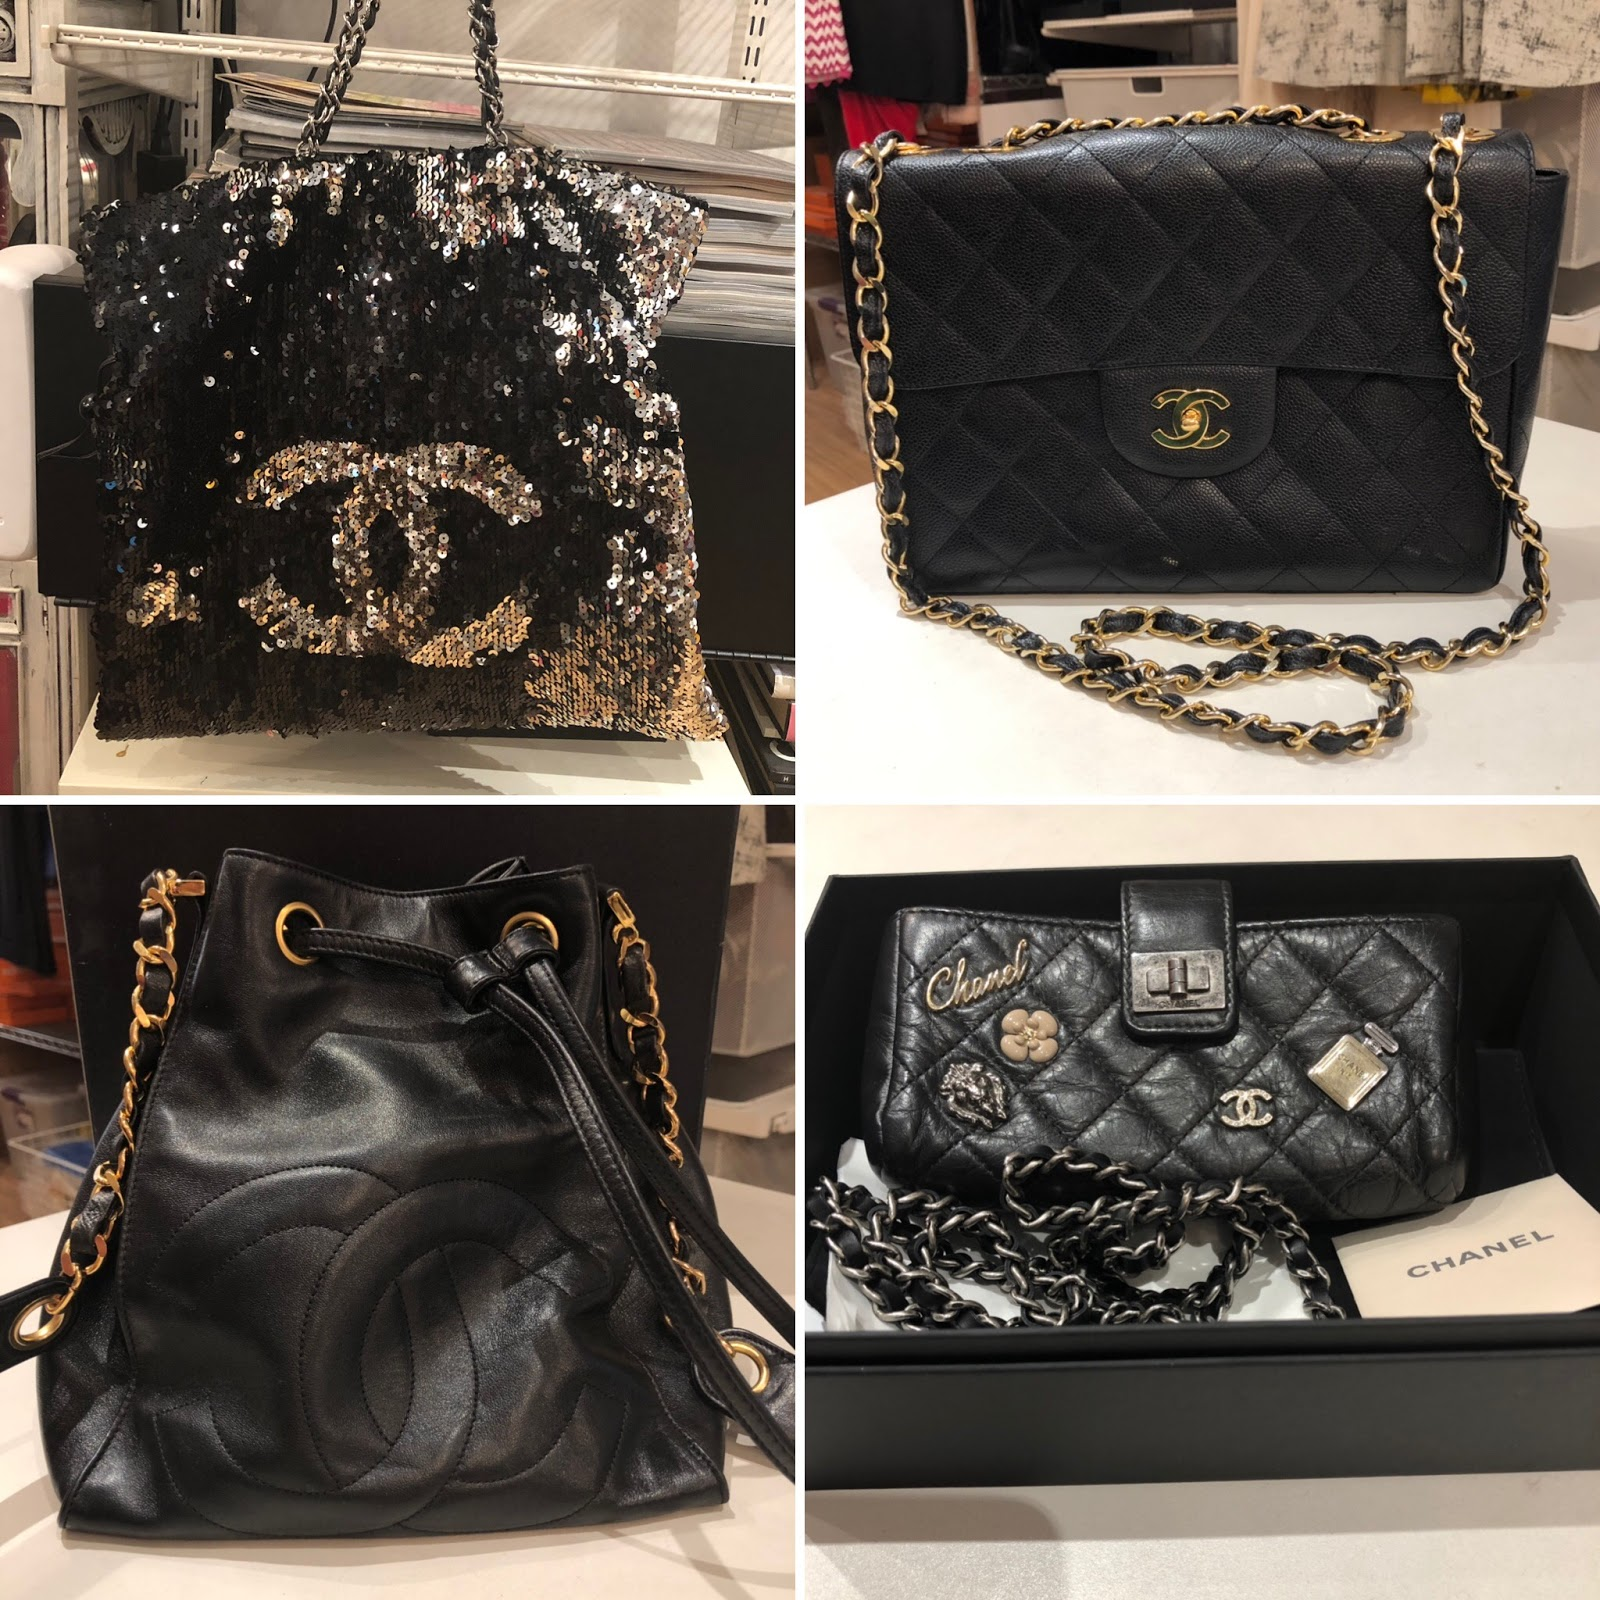 ce78b4a5b0a761 Top: Chanel Black/Silver Sequin Summer Night Drawstring Tote Bag Chanel  Vintage Single Flap Bag (sold), they do have a Jumbo Double Flap that I LOVE